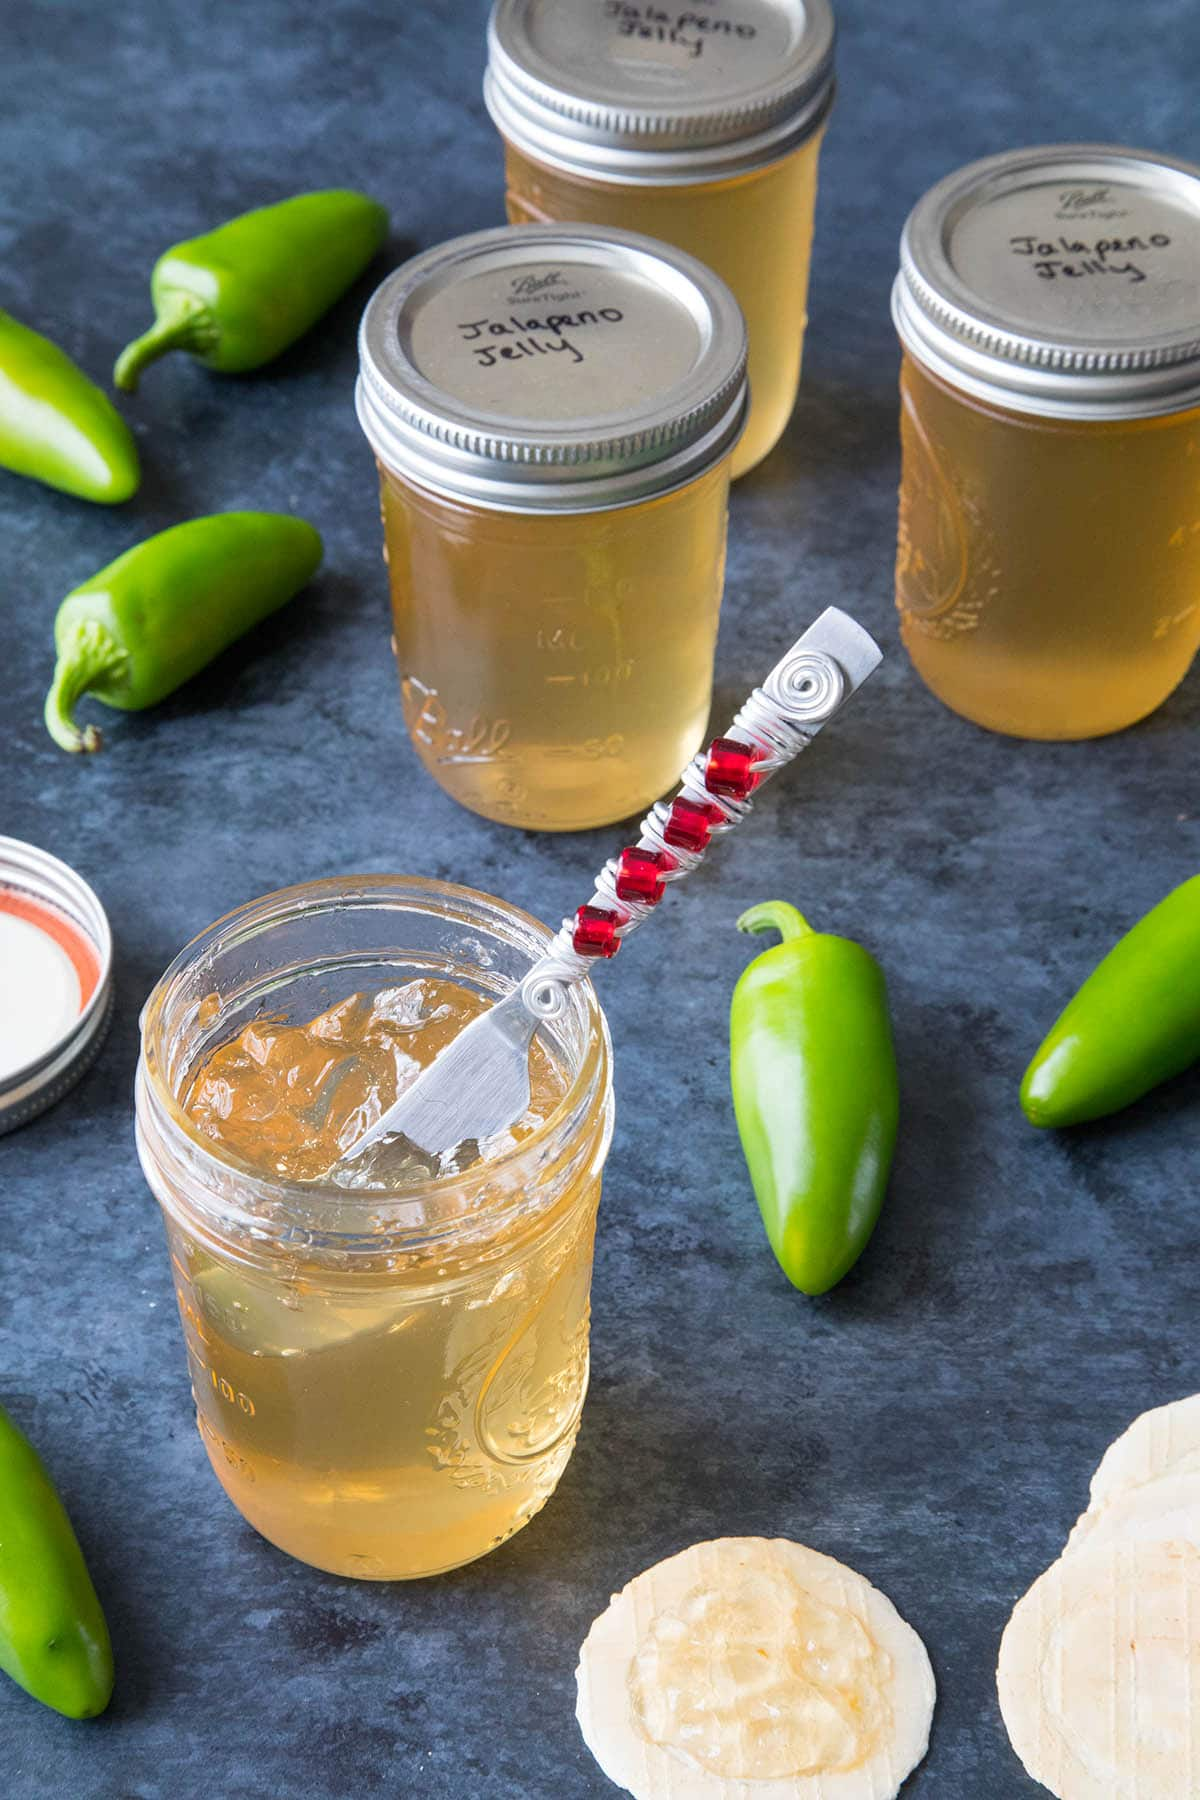 Jalapeno Jelly Recipe - Ready to spread on anything you'd like